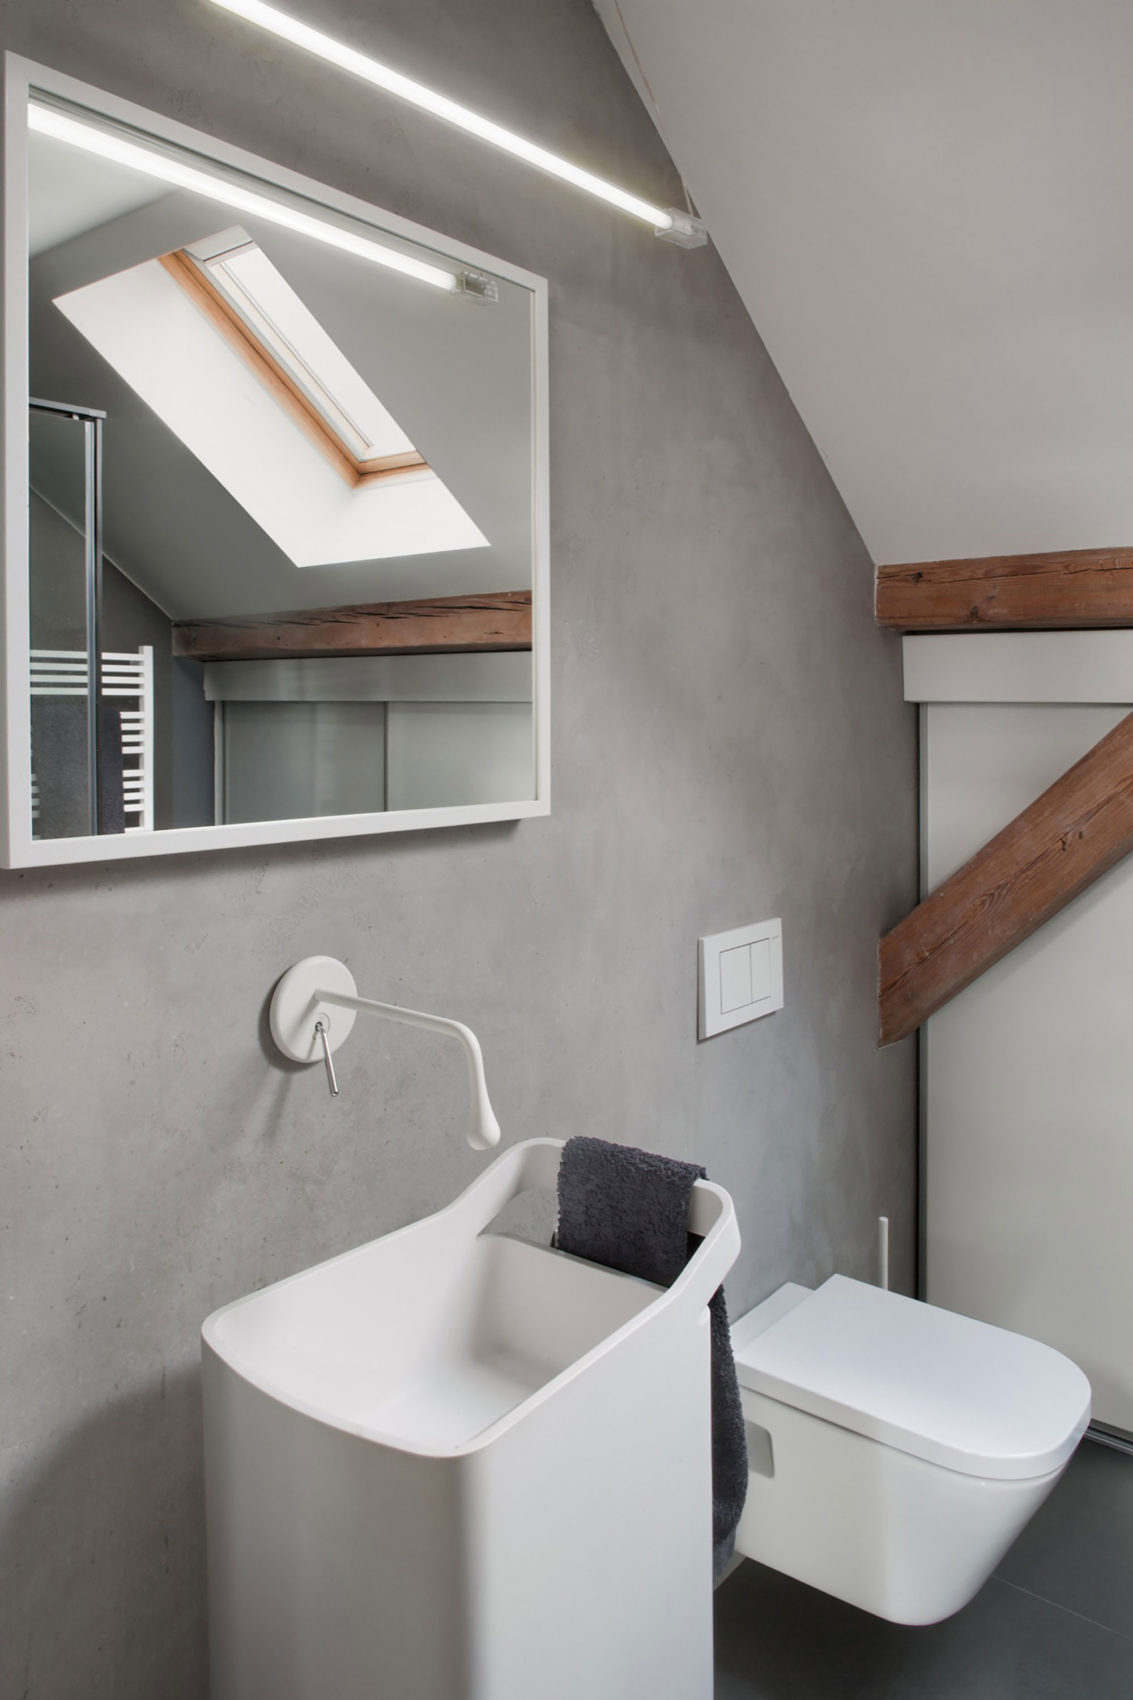 Apartment in Poznan by Cuns Studio (12)